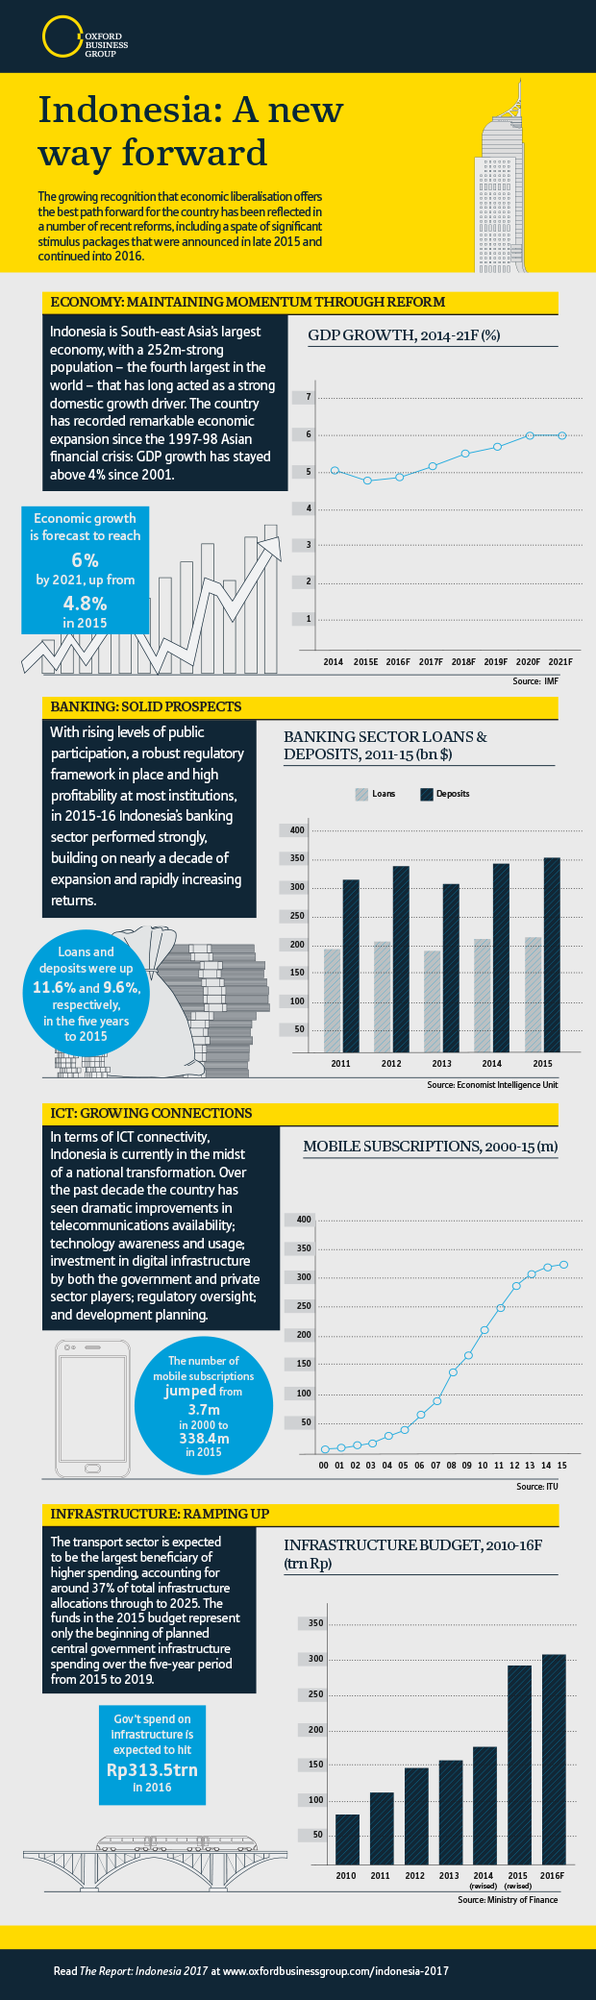 Indonesian Economy Infographic 2016 A New Way Forward